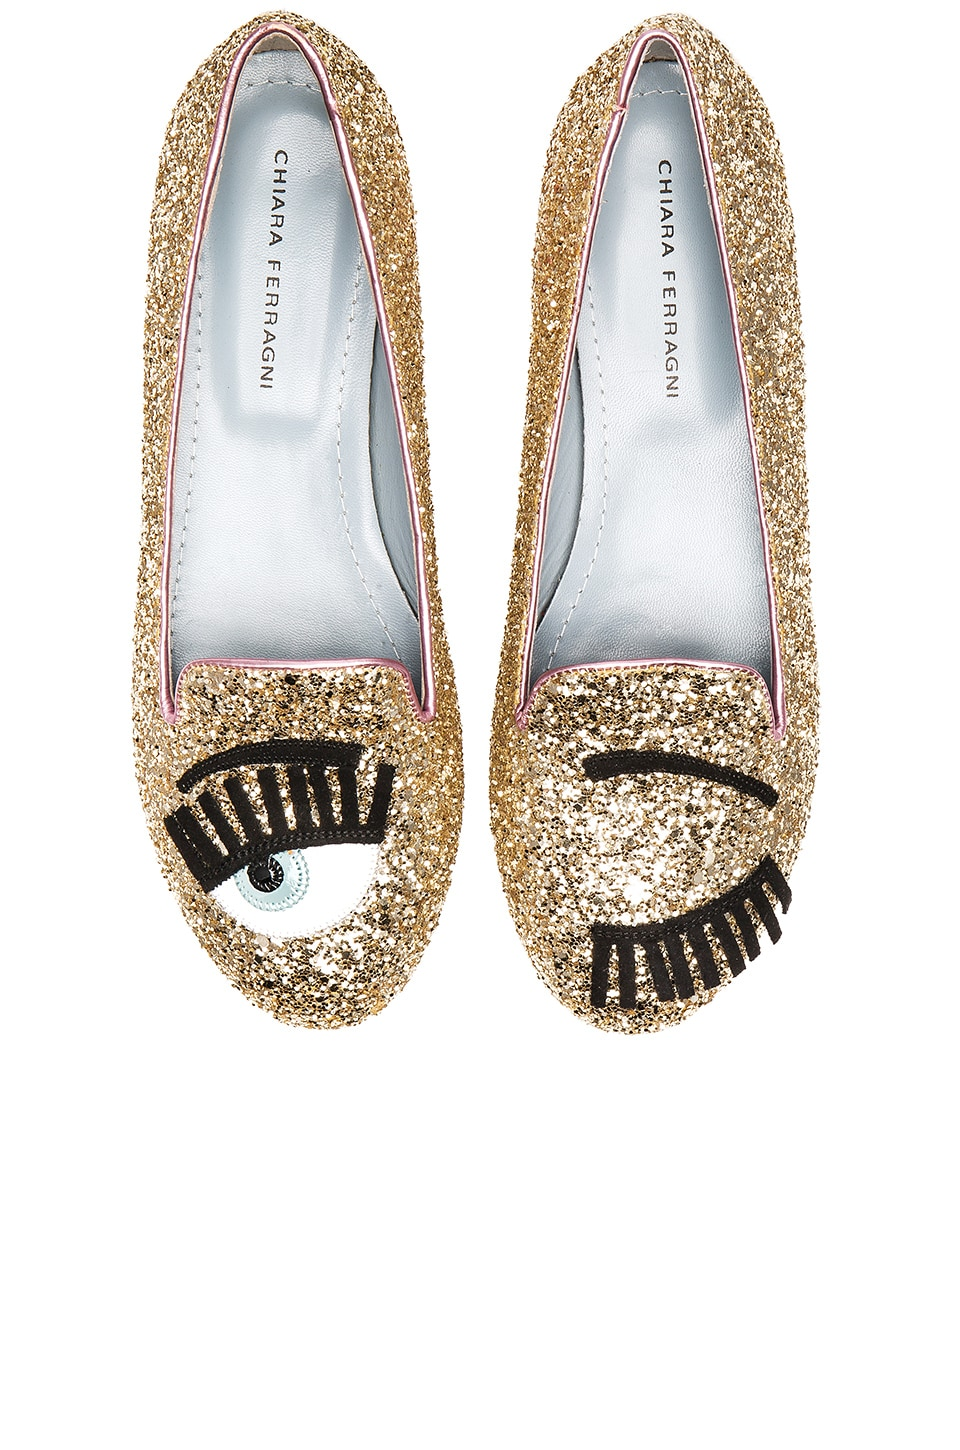 Chiara Ferragni Flirting Sleeper Loafer in Gold & Pink